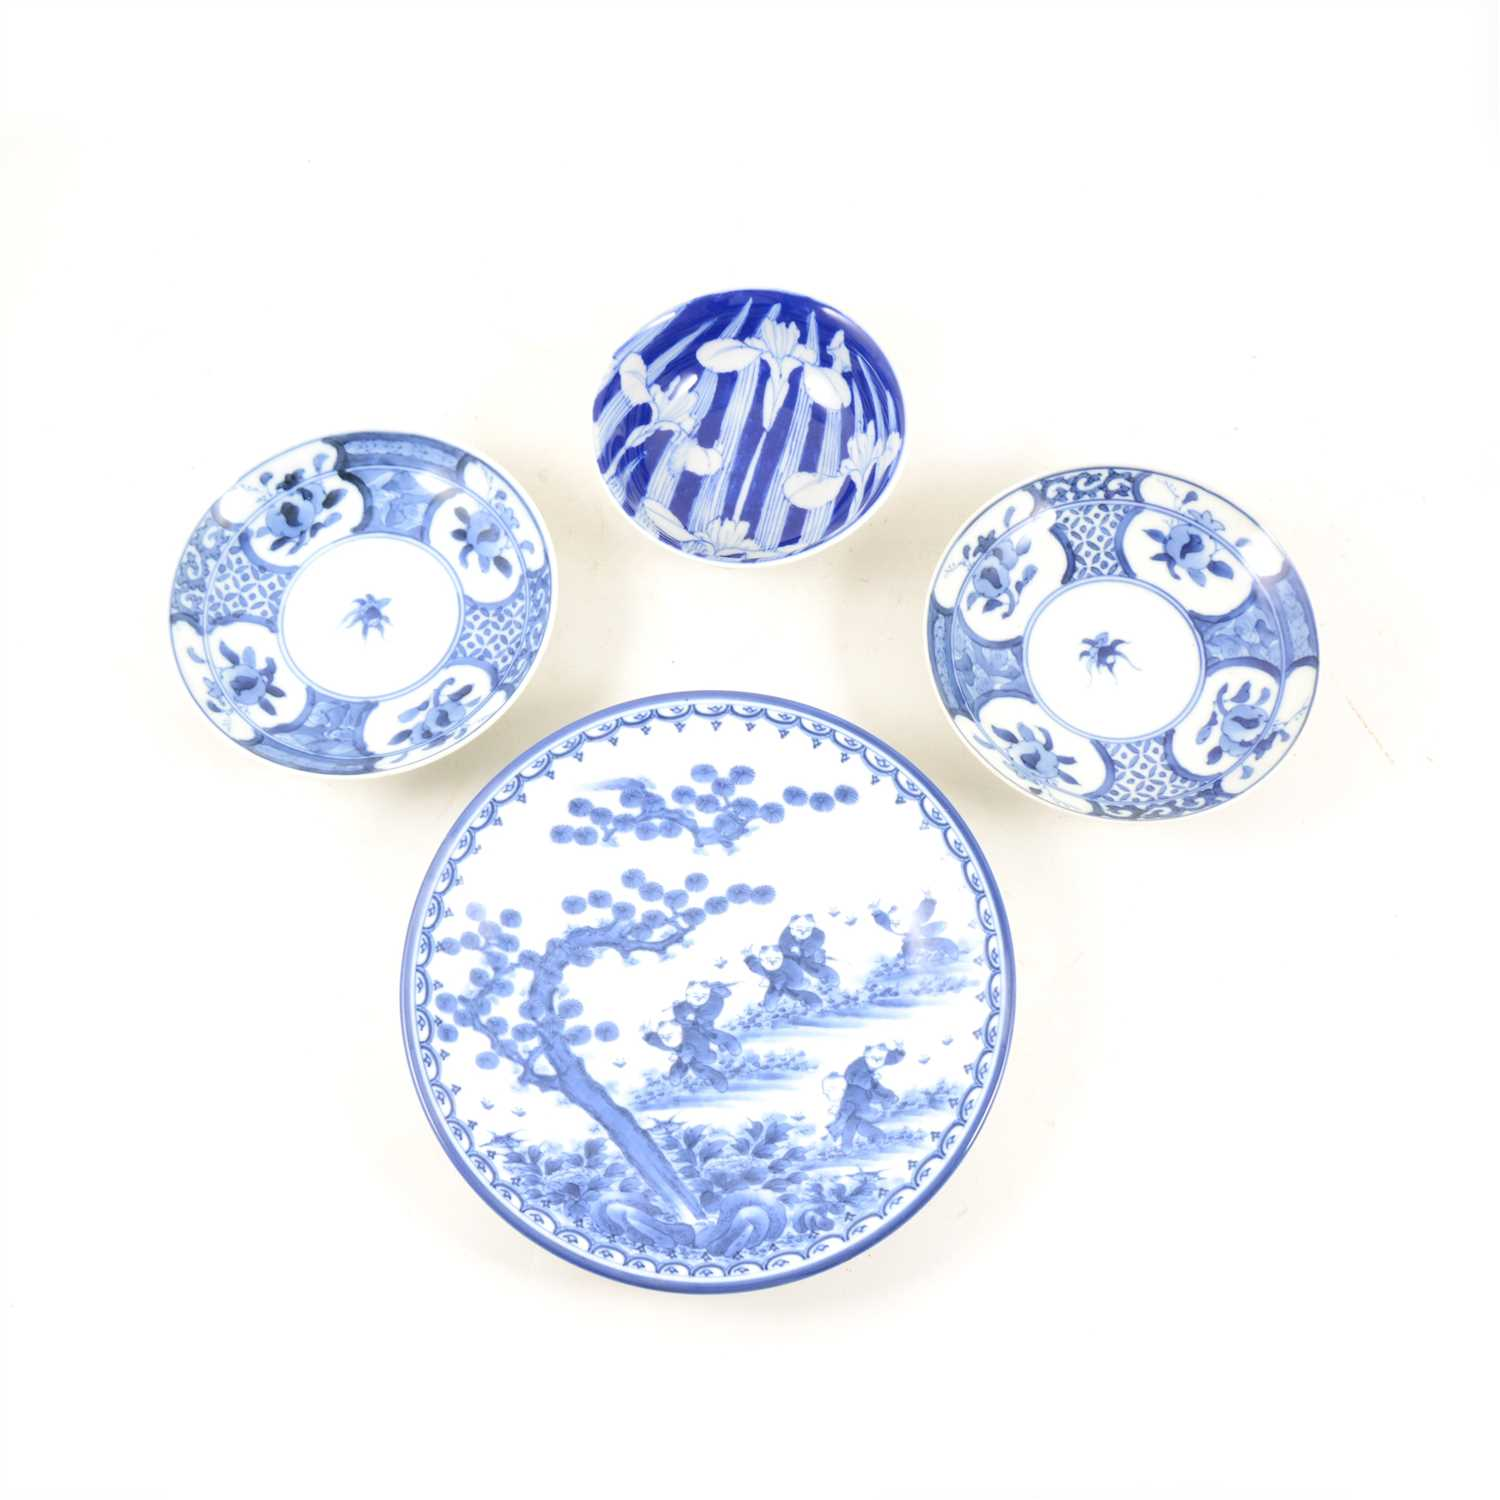 Lot 52-A collection of Japanese blue and white plates and dishes, to include two with dragon design to centre, 21.8cm diameter, and a set of three with floral design, 14.8cm.